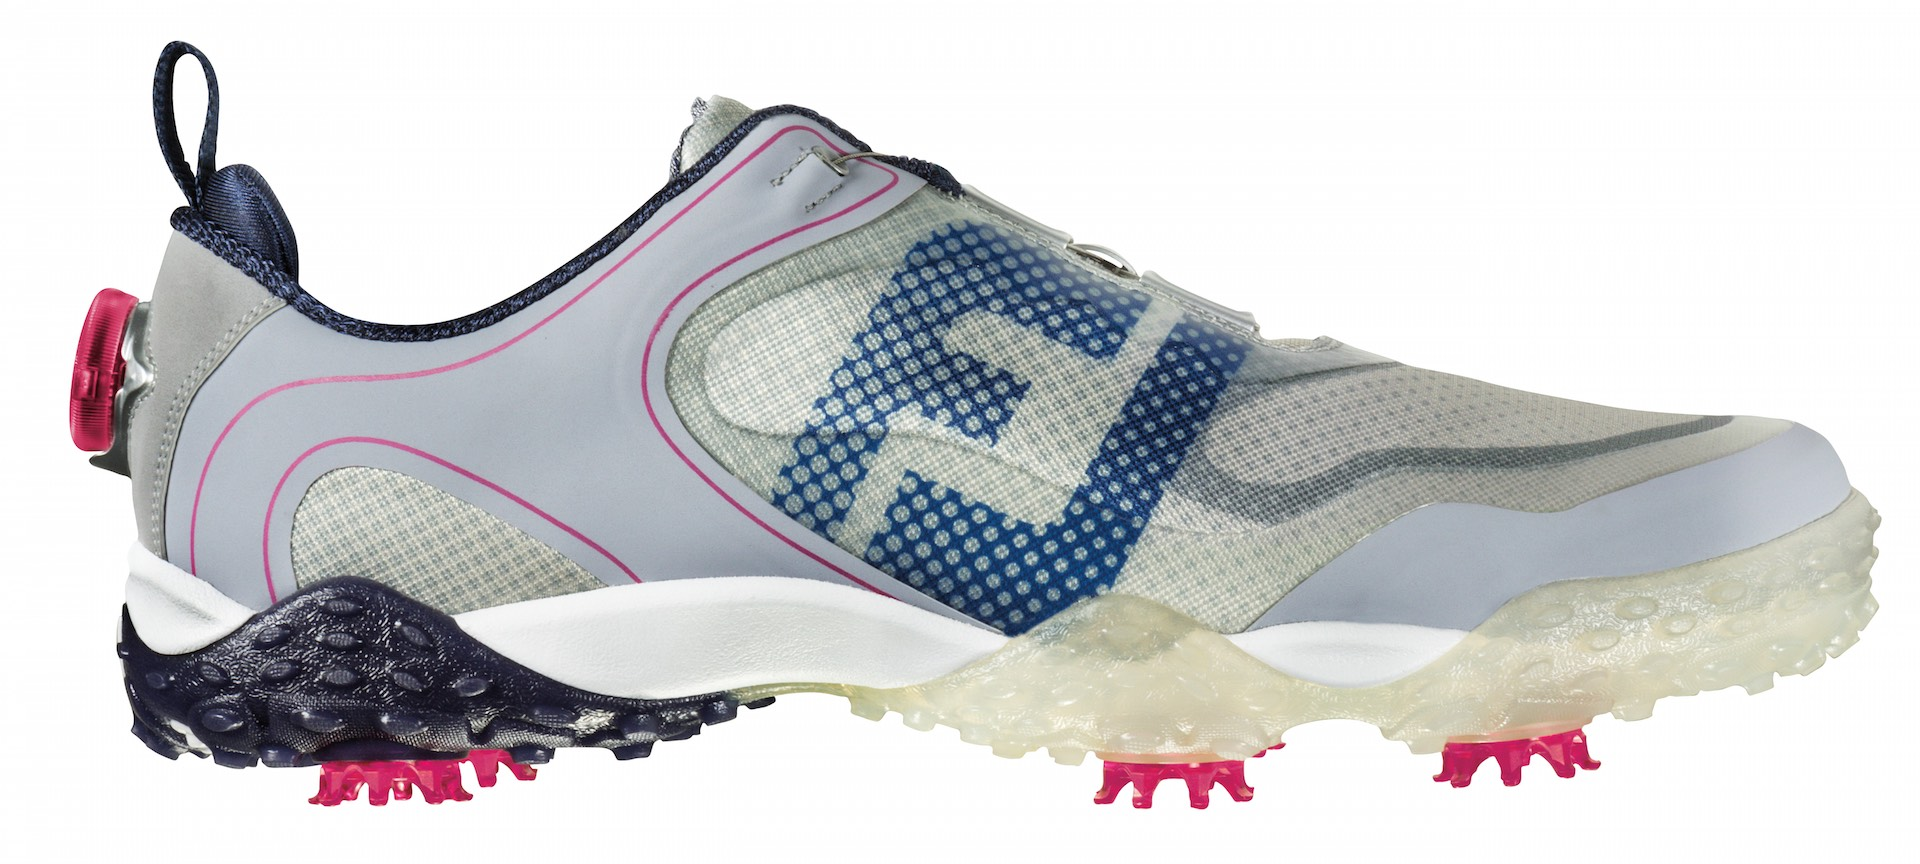 The FootJoy FreeStyle Golf Shoes